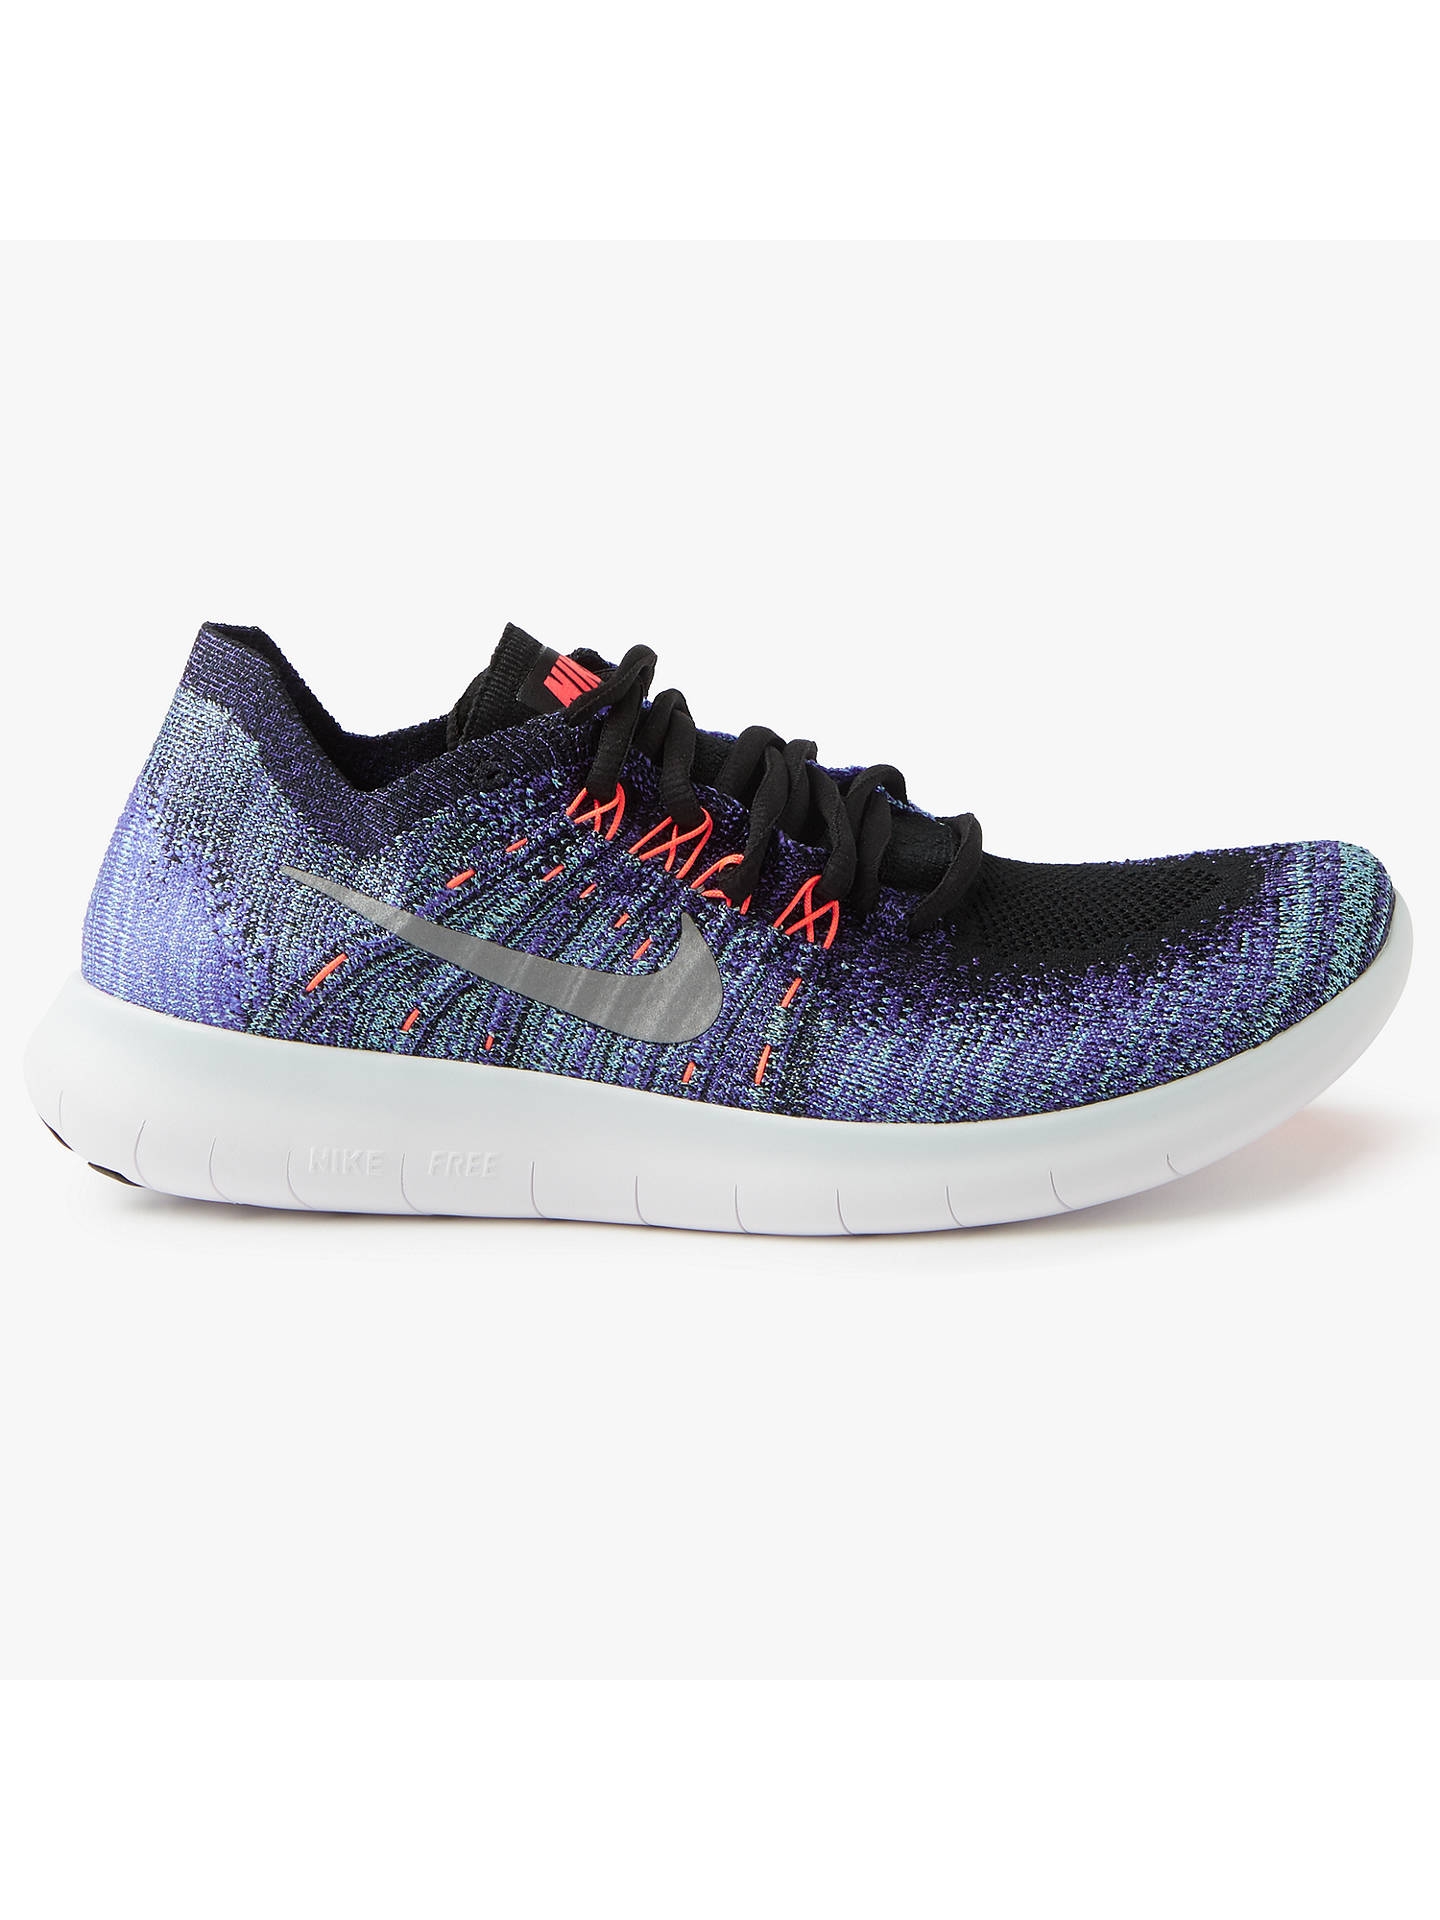 2338cad8191b Nike Free RN Flyknit 2017 Women s Running Shoes at John Lewis   Partners